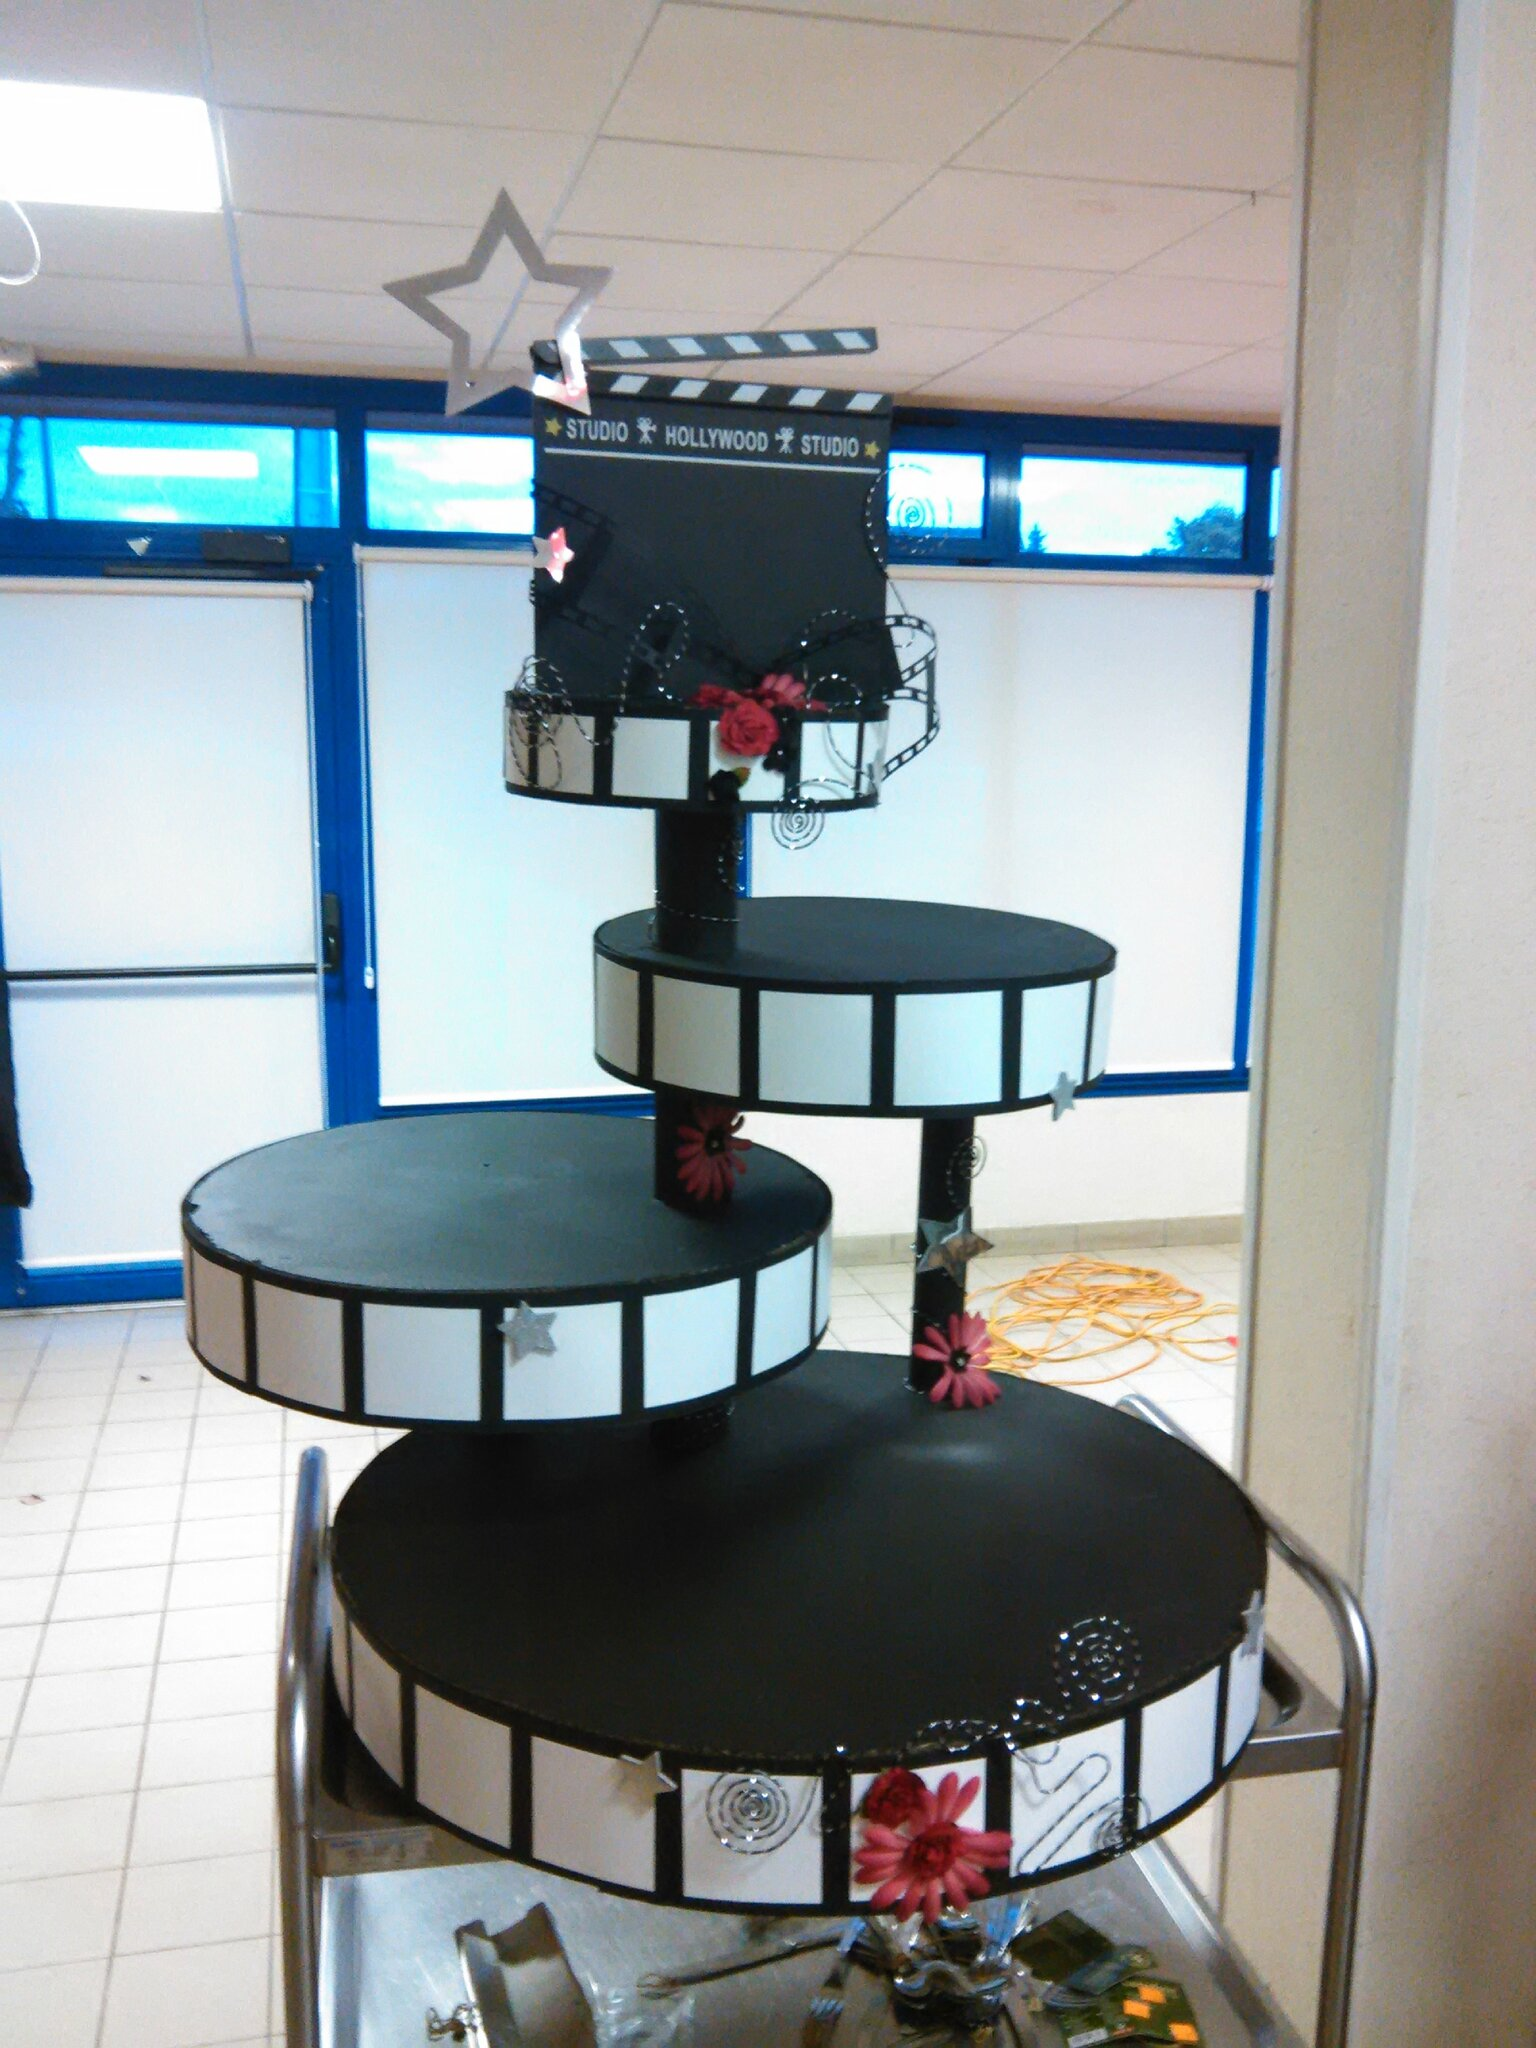 Deco de salle sur le theme du cinema les r v lations cr atives de nathalie - Deco de table theme cinema ...